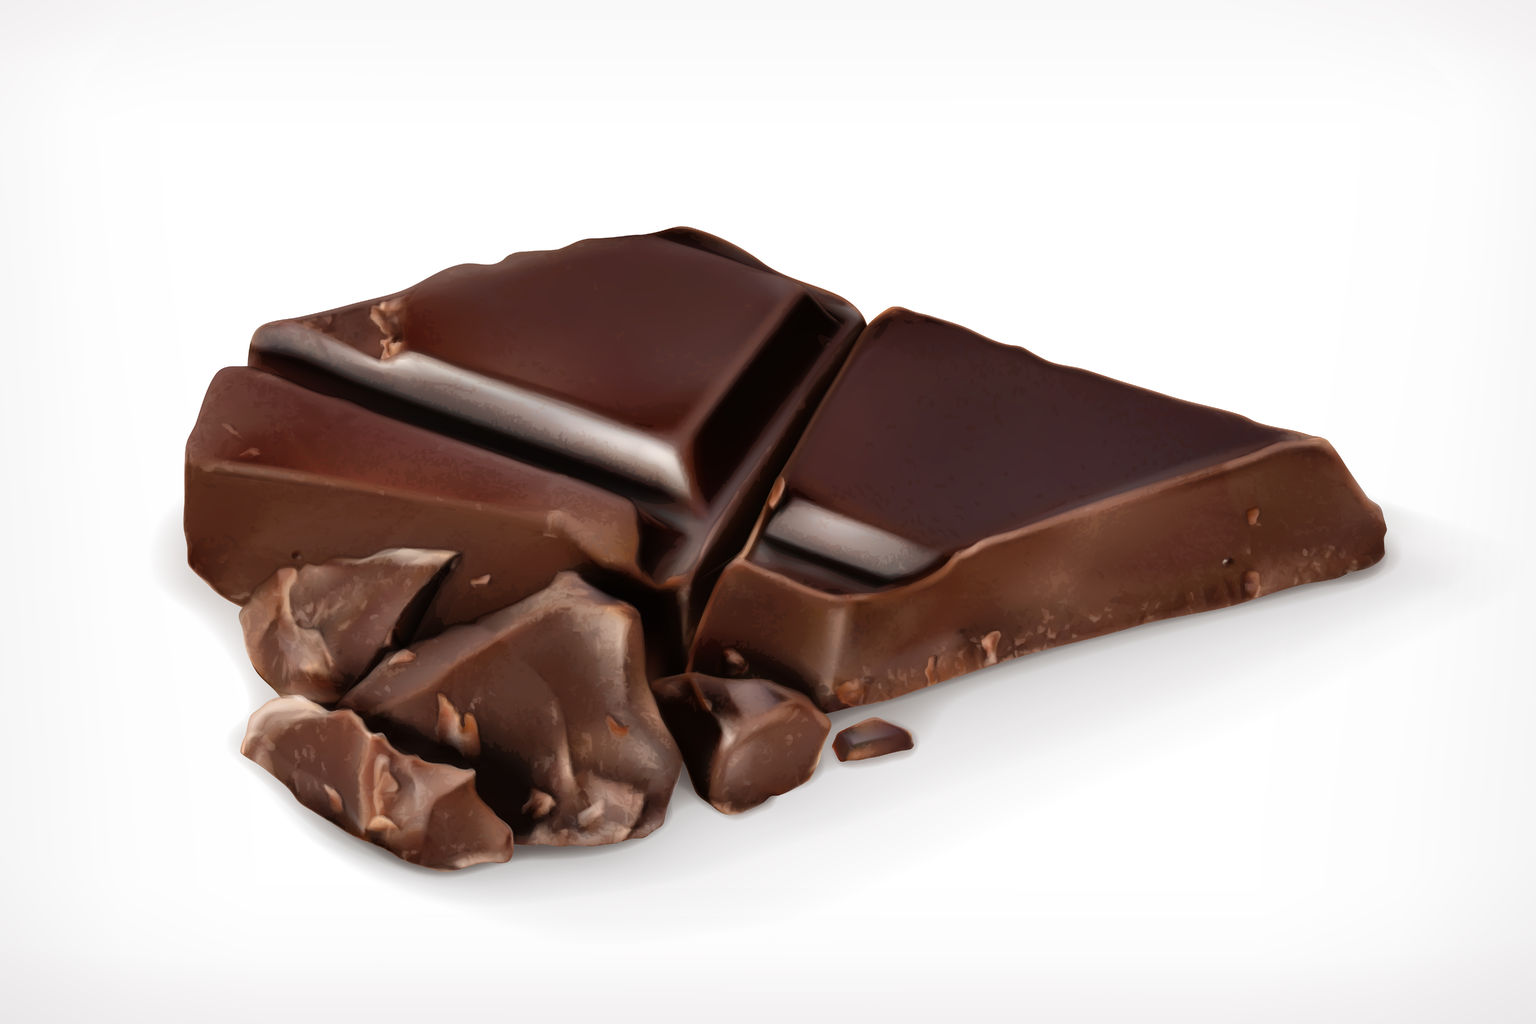 dark chocolate helps you lose weight